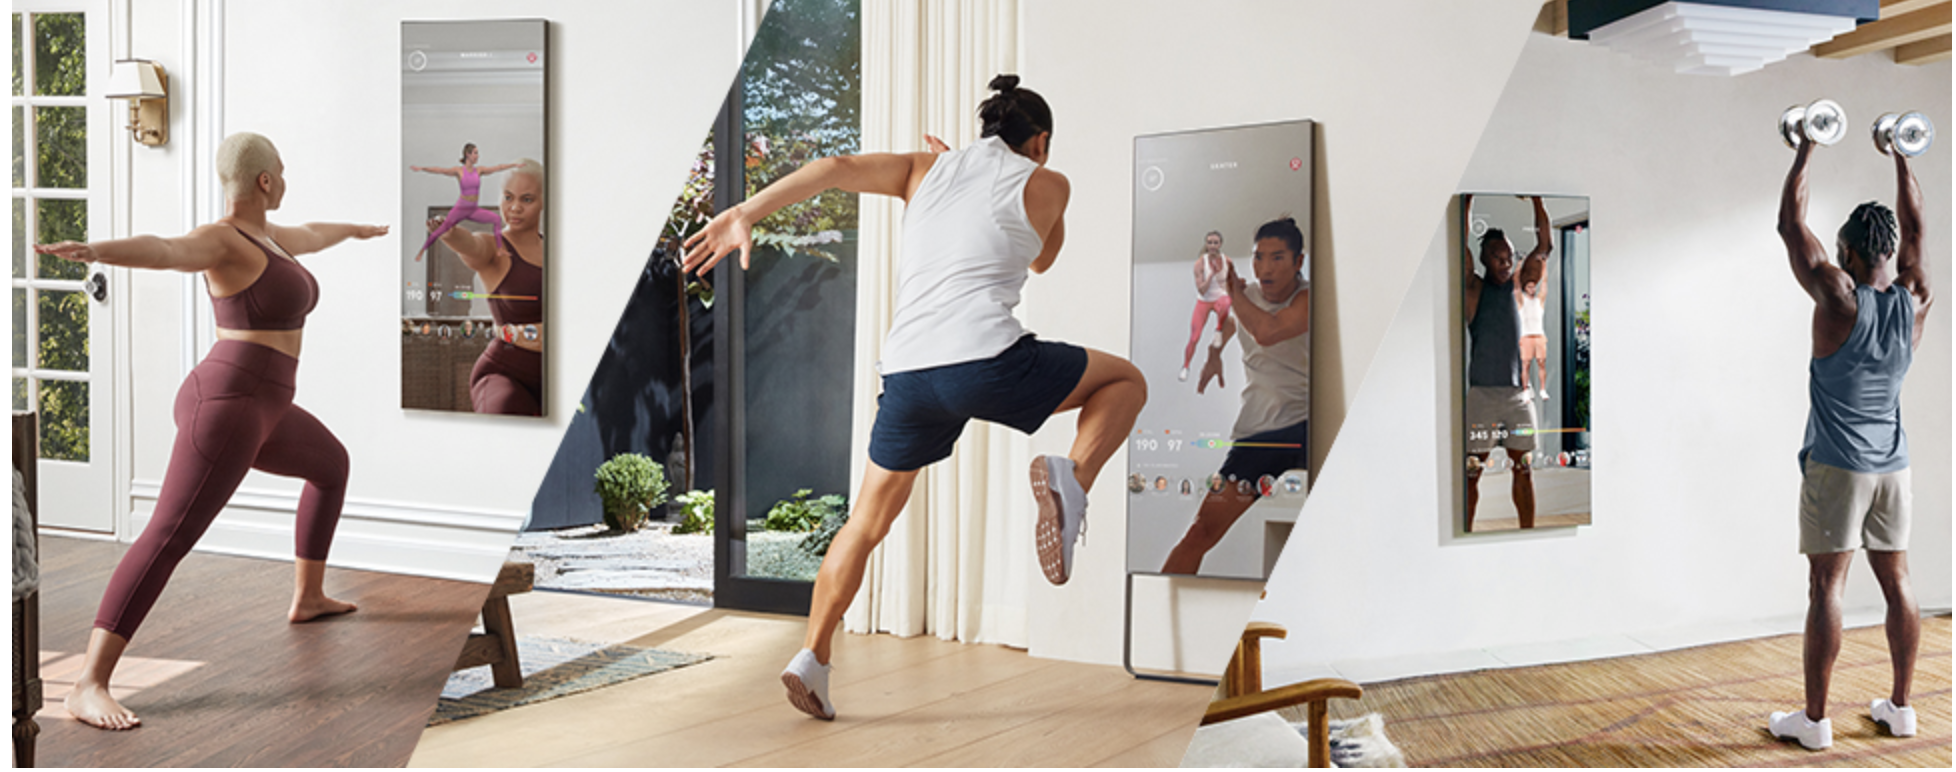 Models doing yoga, cardio, and strength workouts while standing in front of mounted mirrors with digital displays on them